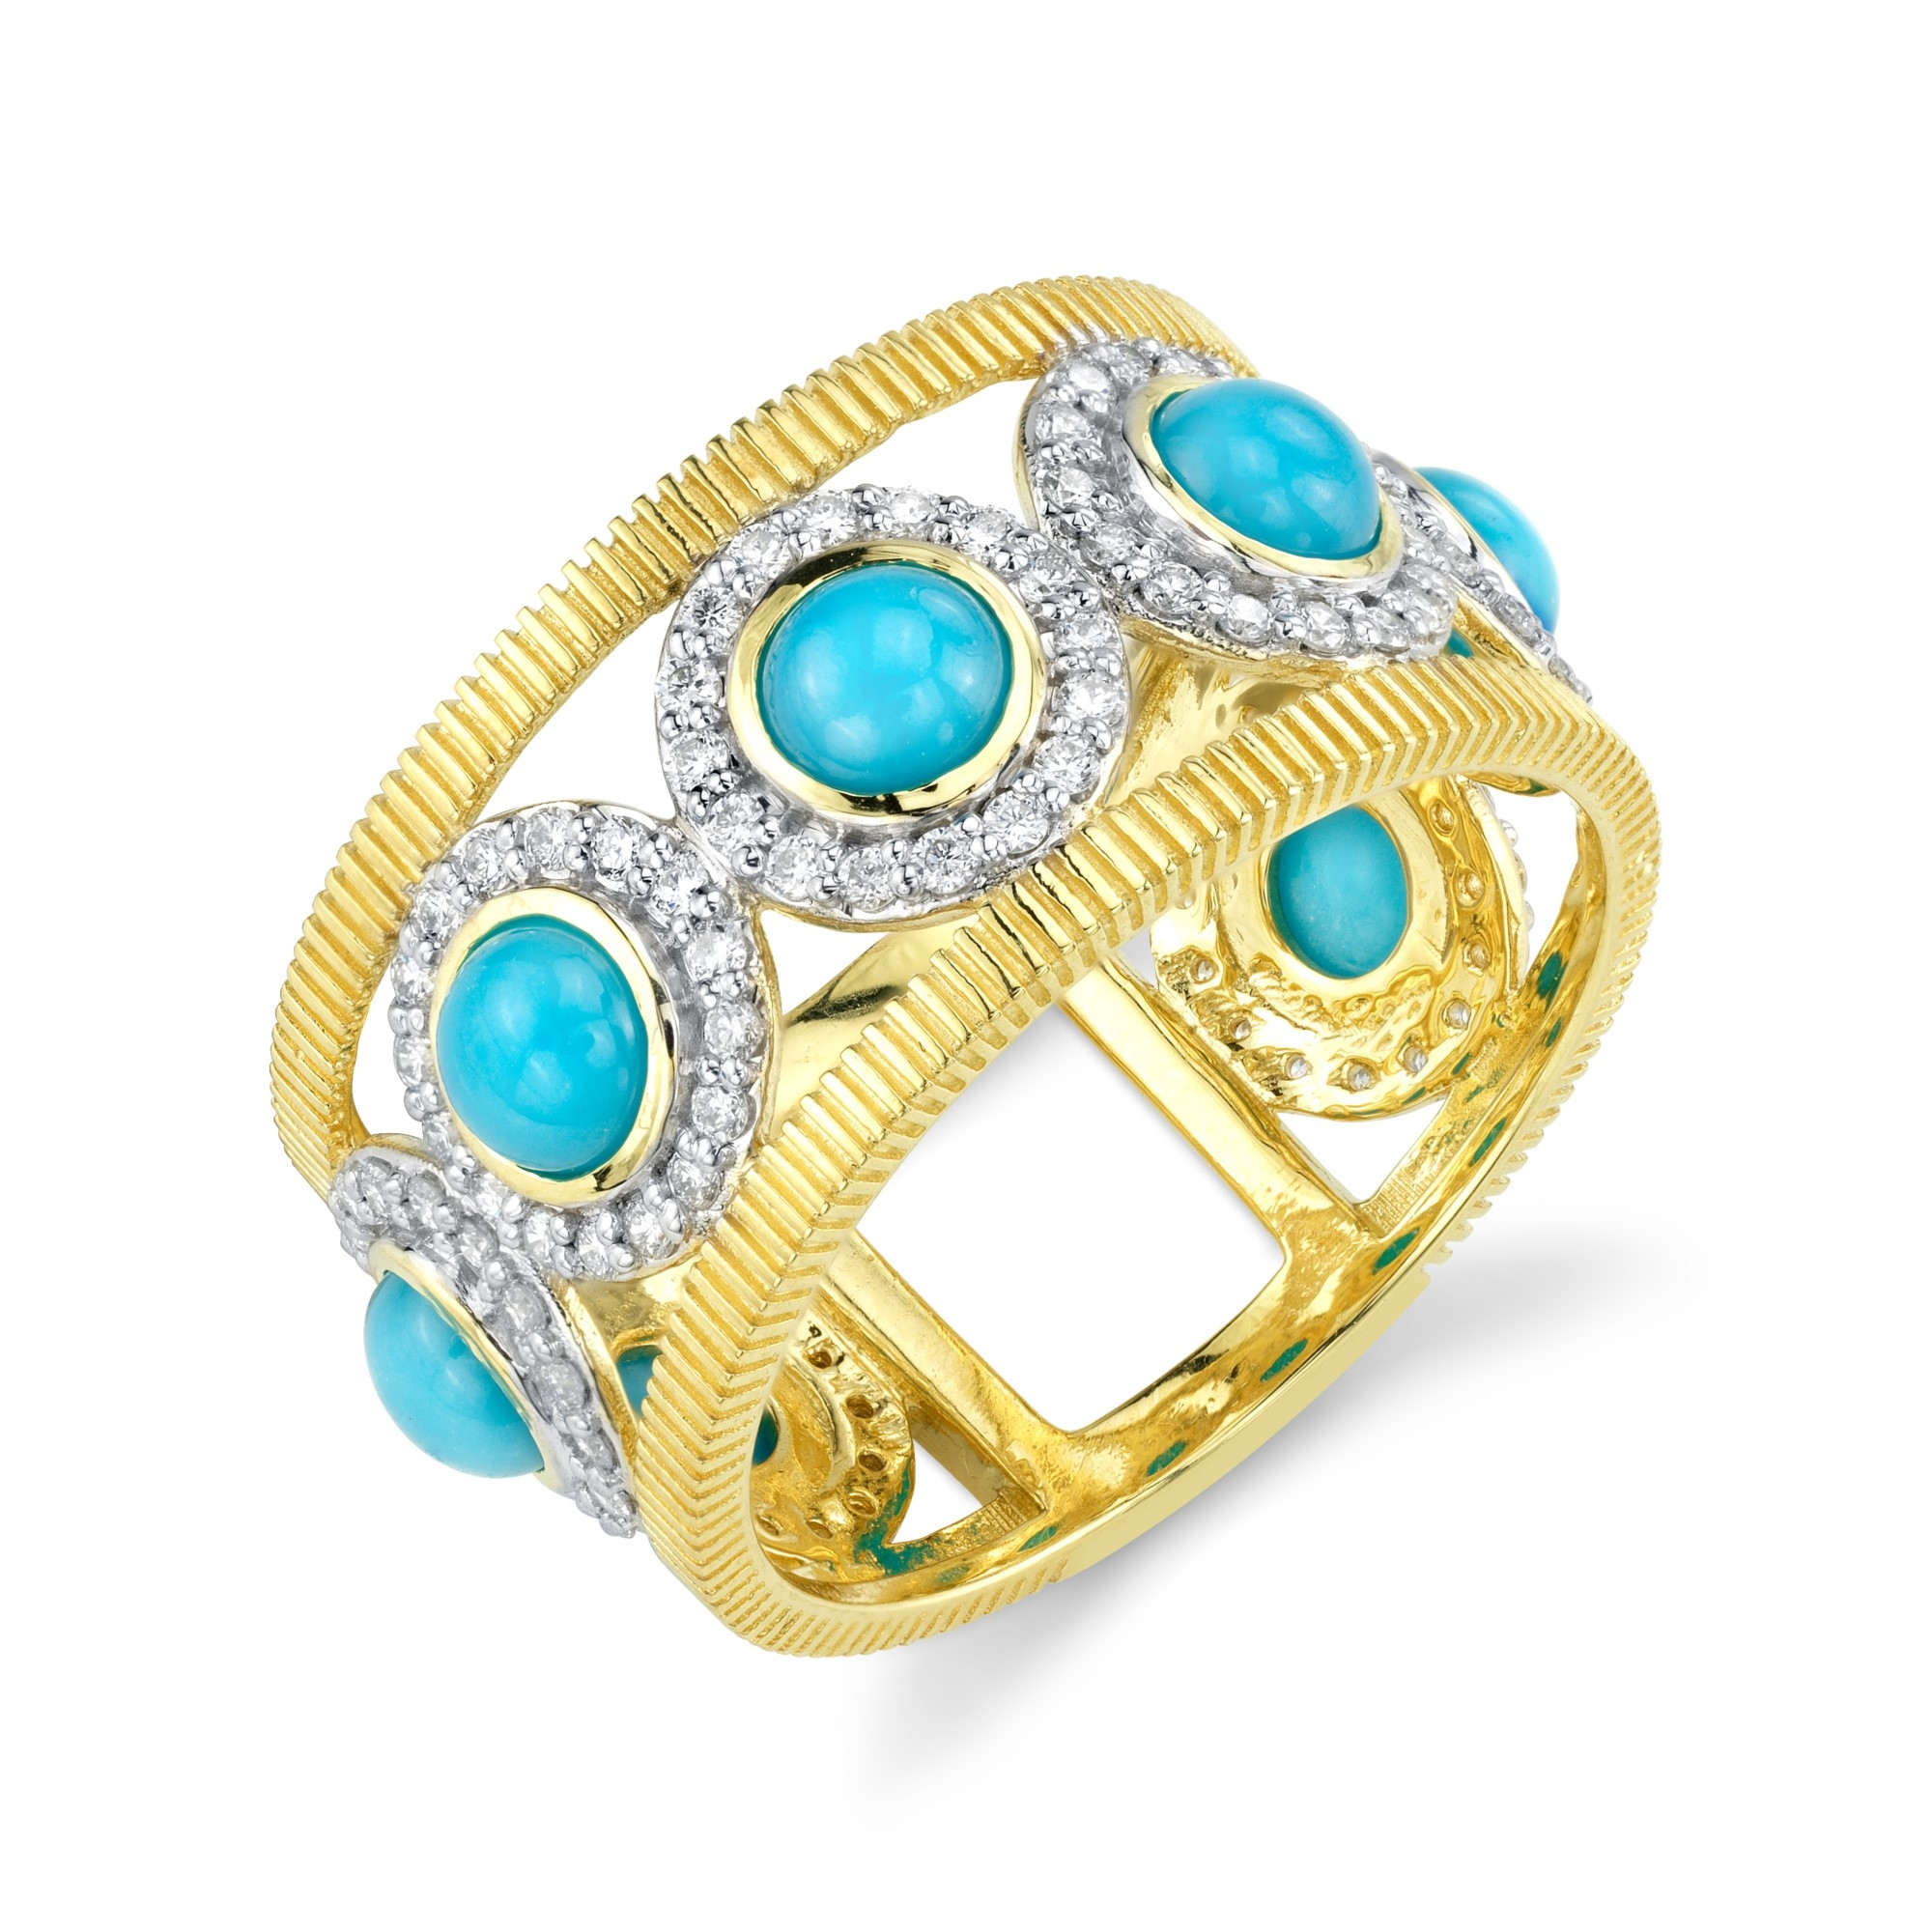 Sloane Street 18K Yellow Gold .56cts  Diamonds Gold Ring with Stones R018F-TQ-WDCB-Y